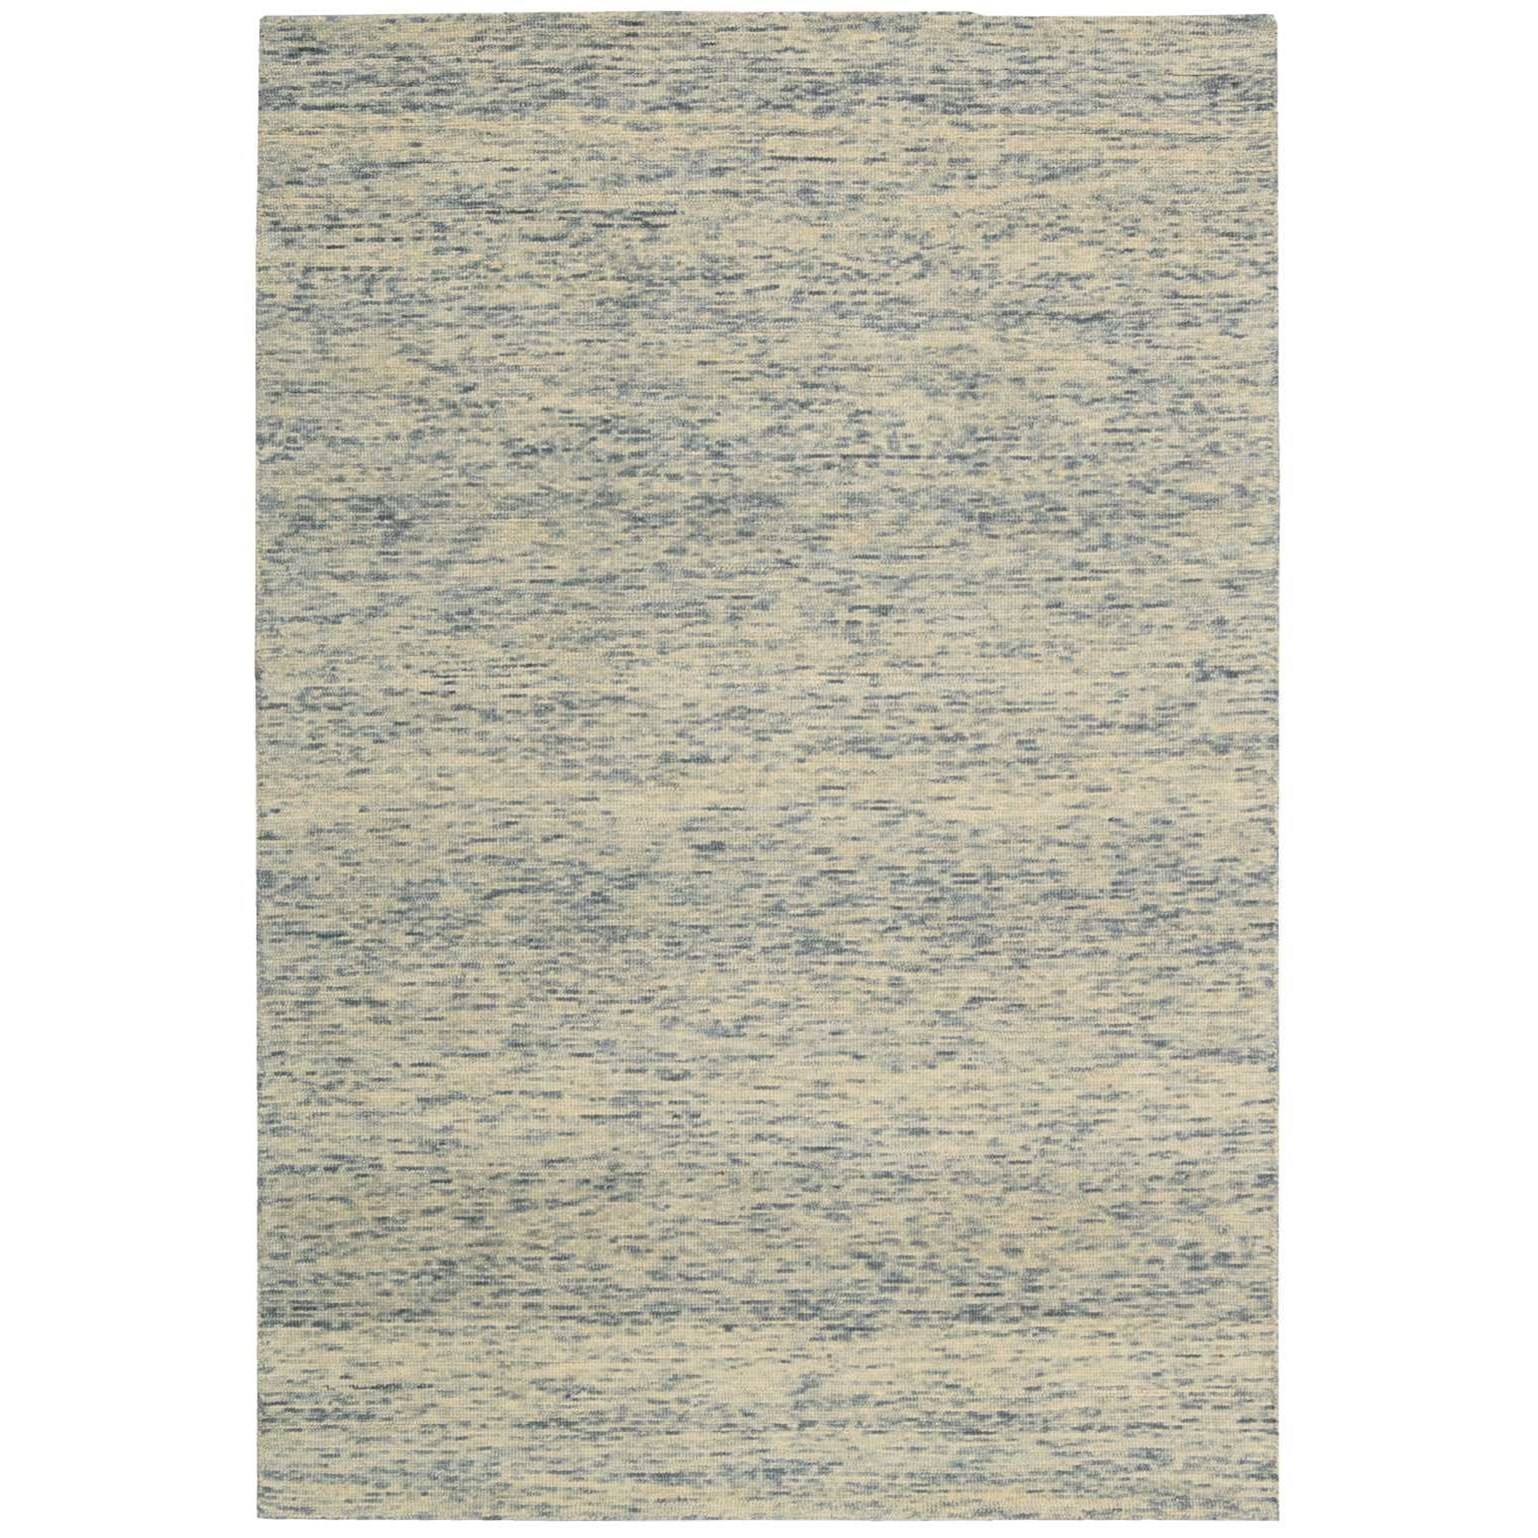 "Sterling 5' x 7'6"" Ocean Rectangle Rug by Nourison at Home Collections Furniture"